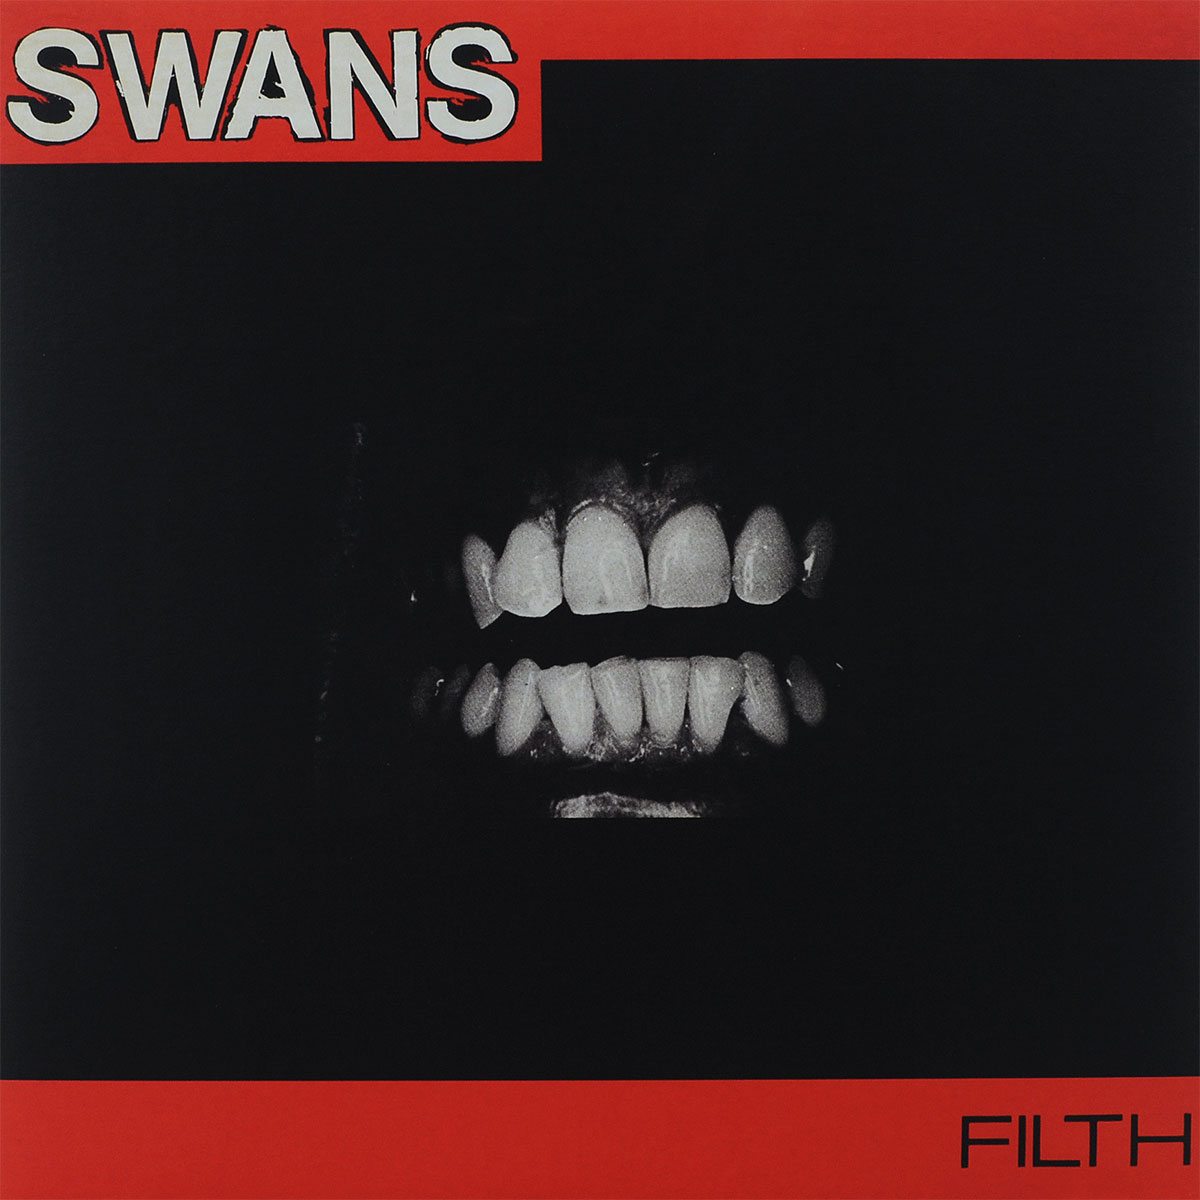 Swans Swans. Filth. Remastered Edition (LP) the four swans